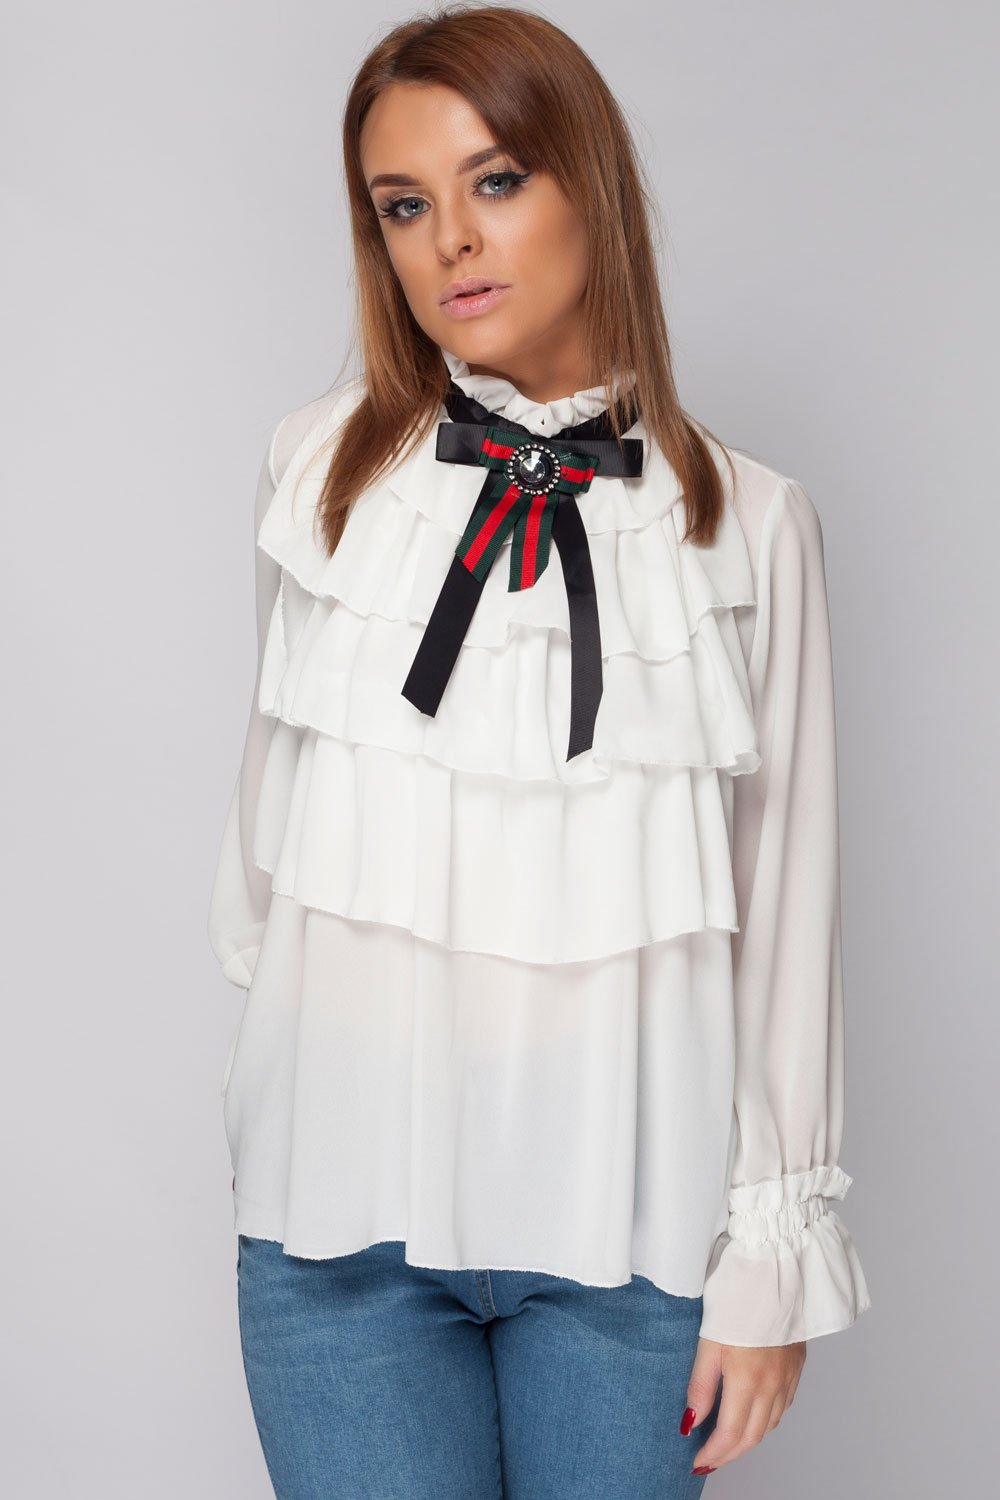 9d696a8d5f7ded Womens Gucci Inspired Frill Blouse – Styledup.co.uk